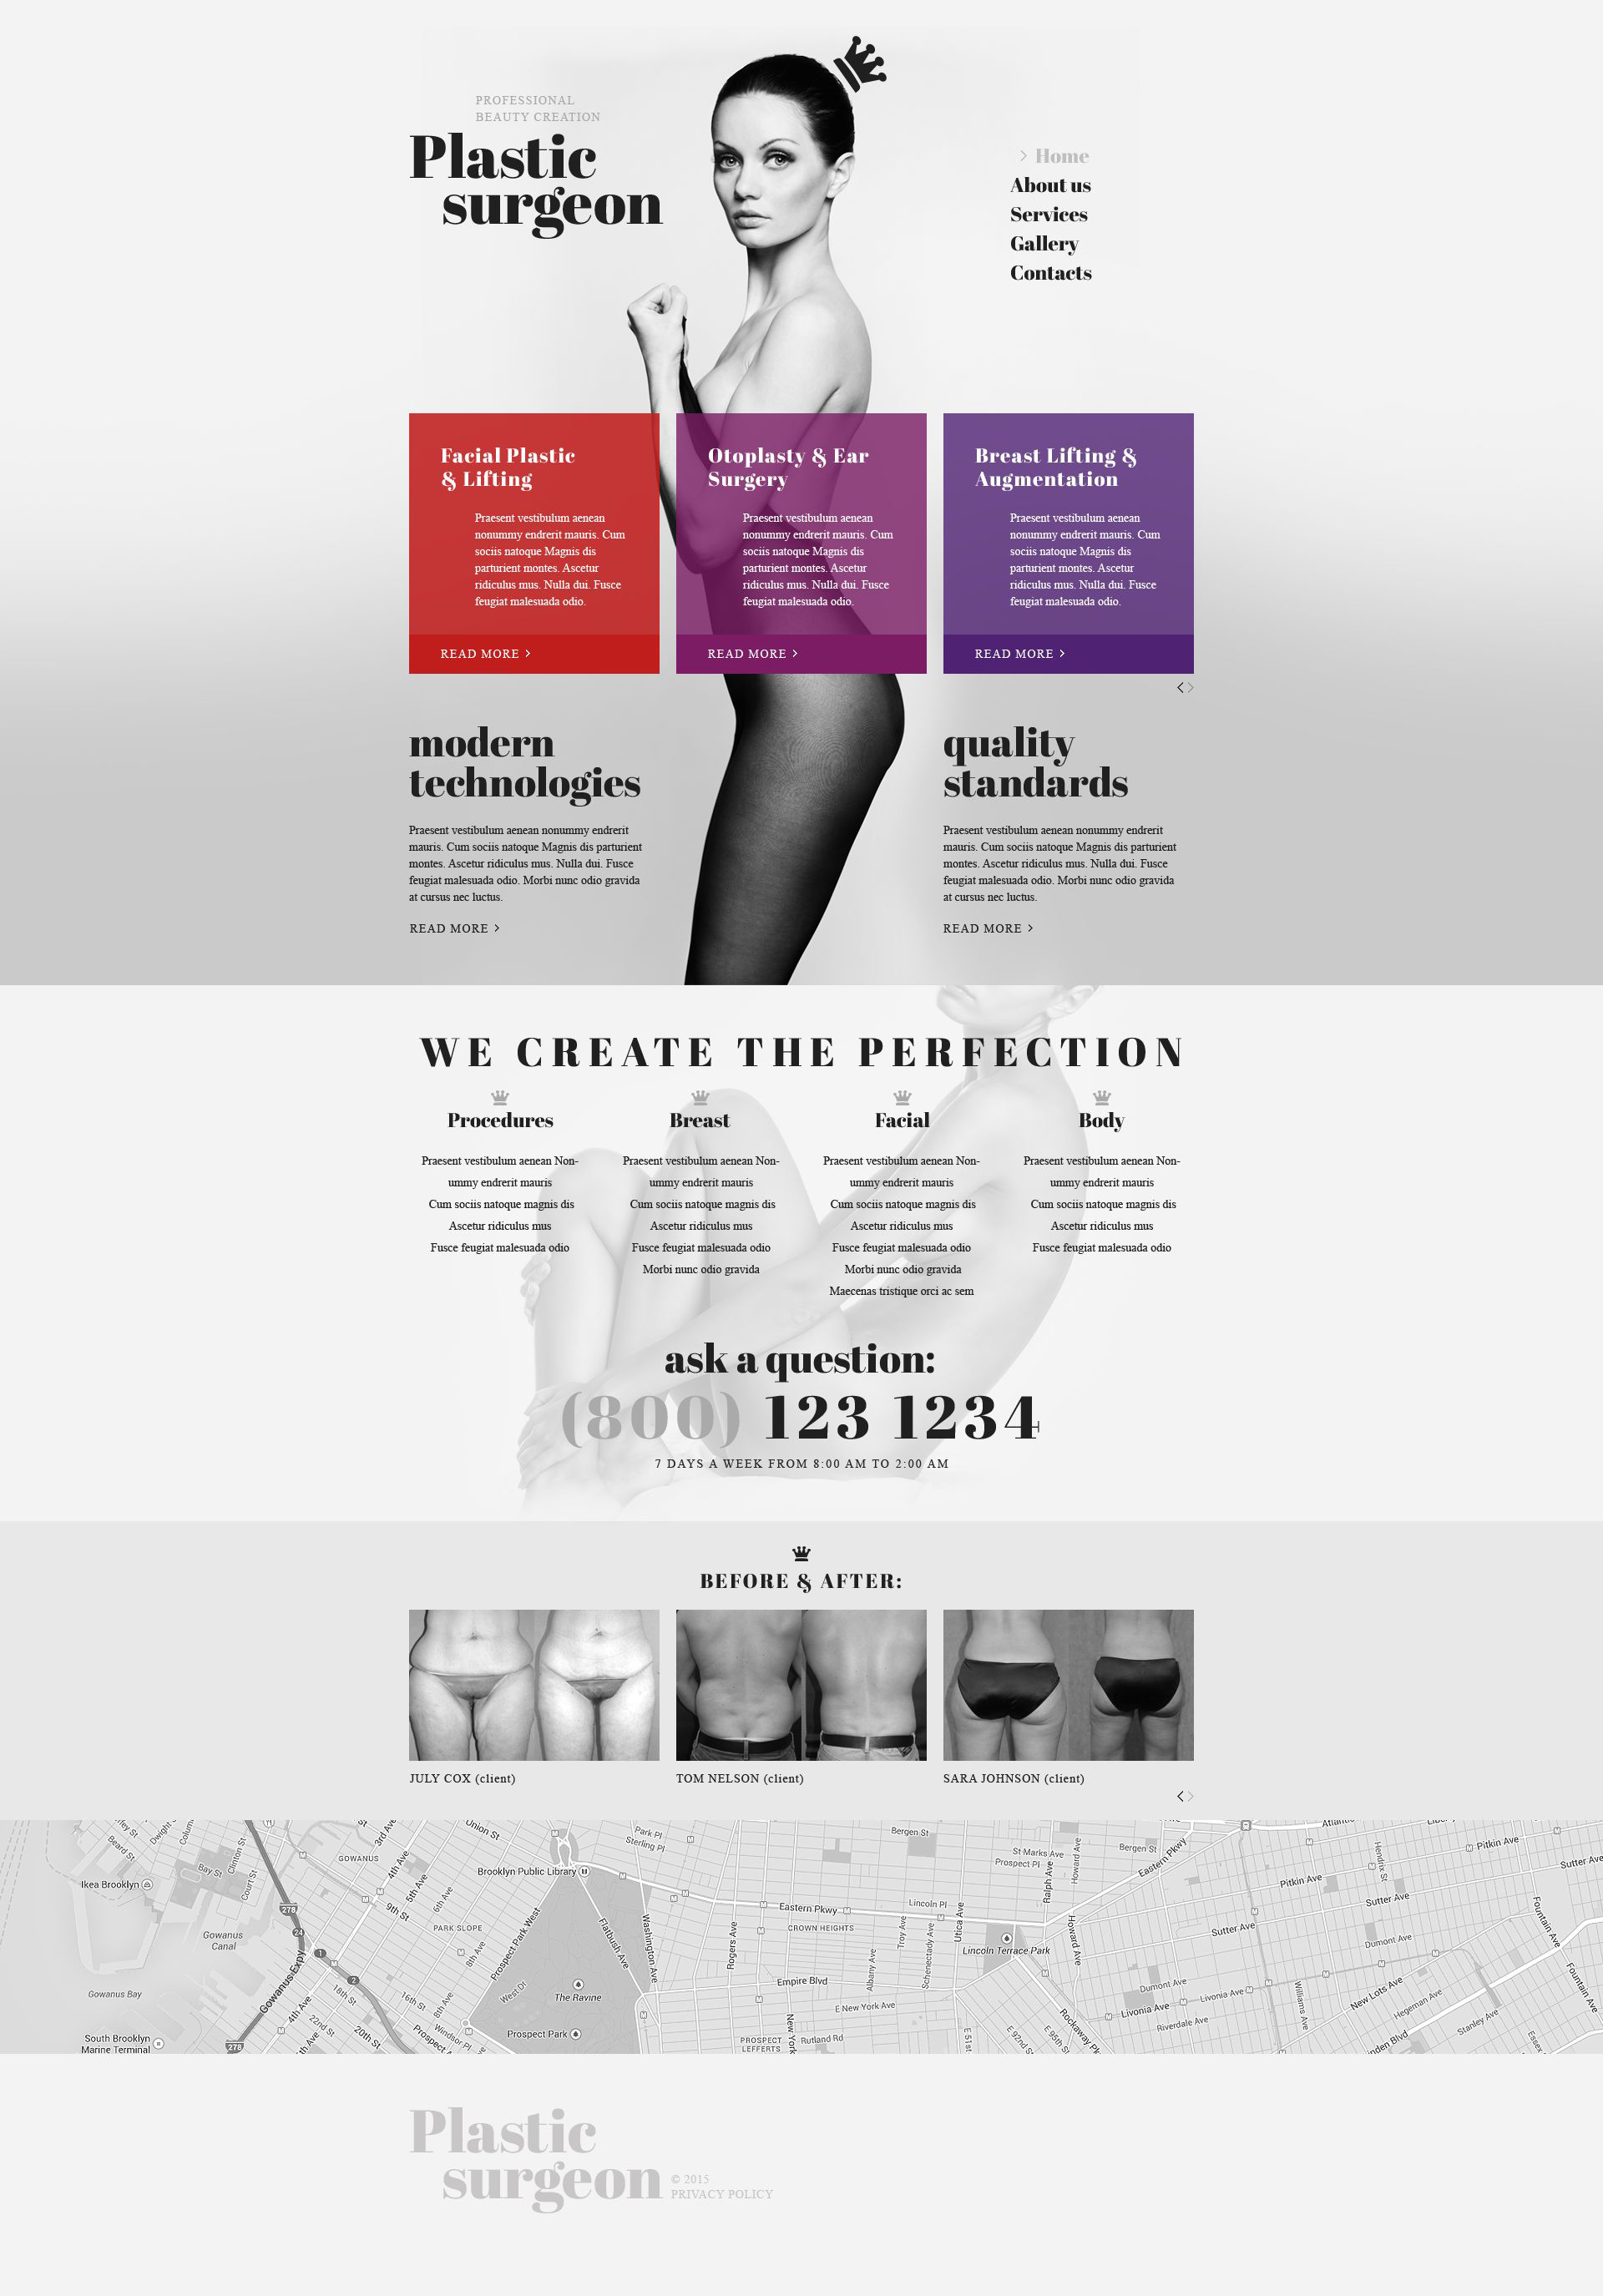 The Plastic Surgeon Responsive Javascript Animated Design 53273, one of the best website templates of its kind (medical, most popular), also known as plastic surgeon website template, doctor website template, surgery website template, face website template, beauty website template, lifting website template, body website template, breasts clinic website template, services website template, client website template, testimonials website template, body website template, help website template, inspection website template, equipment website template, patients website template, medicine website template, healthcare website template, consultation website template, specialists website template, procedure website template, drugs website template, pills website template, cure website template, vaccine website template, treatment and related with plastic surgeon, doctor, surgery, face, beauty, lifting, body, breasts clinic, services, client, testimonials, body, help, inspection, equipment, patients, medicine, healthcare, consultation, specialists, procedure, drugs, pills, cure, vaccine, treatment, etc.